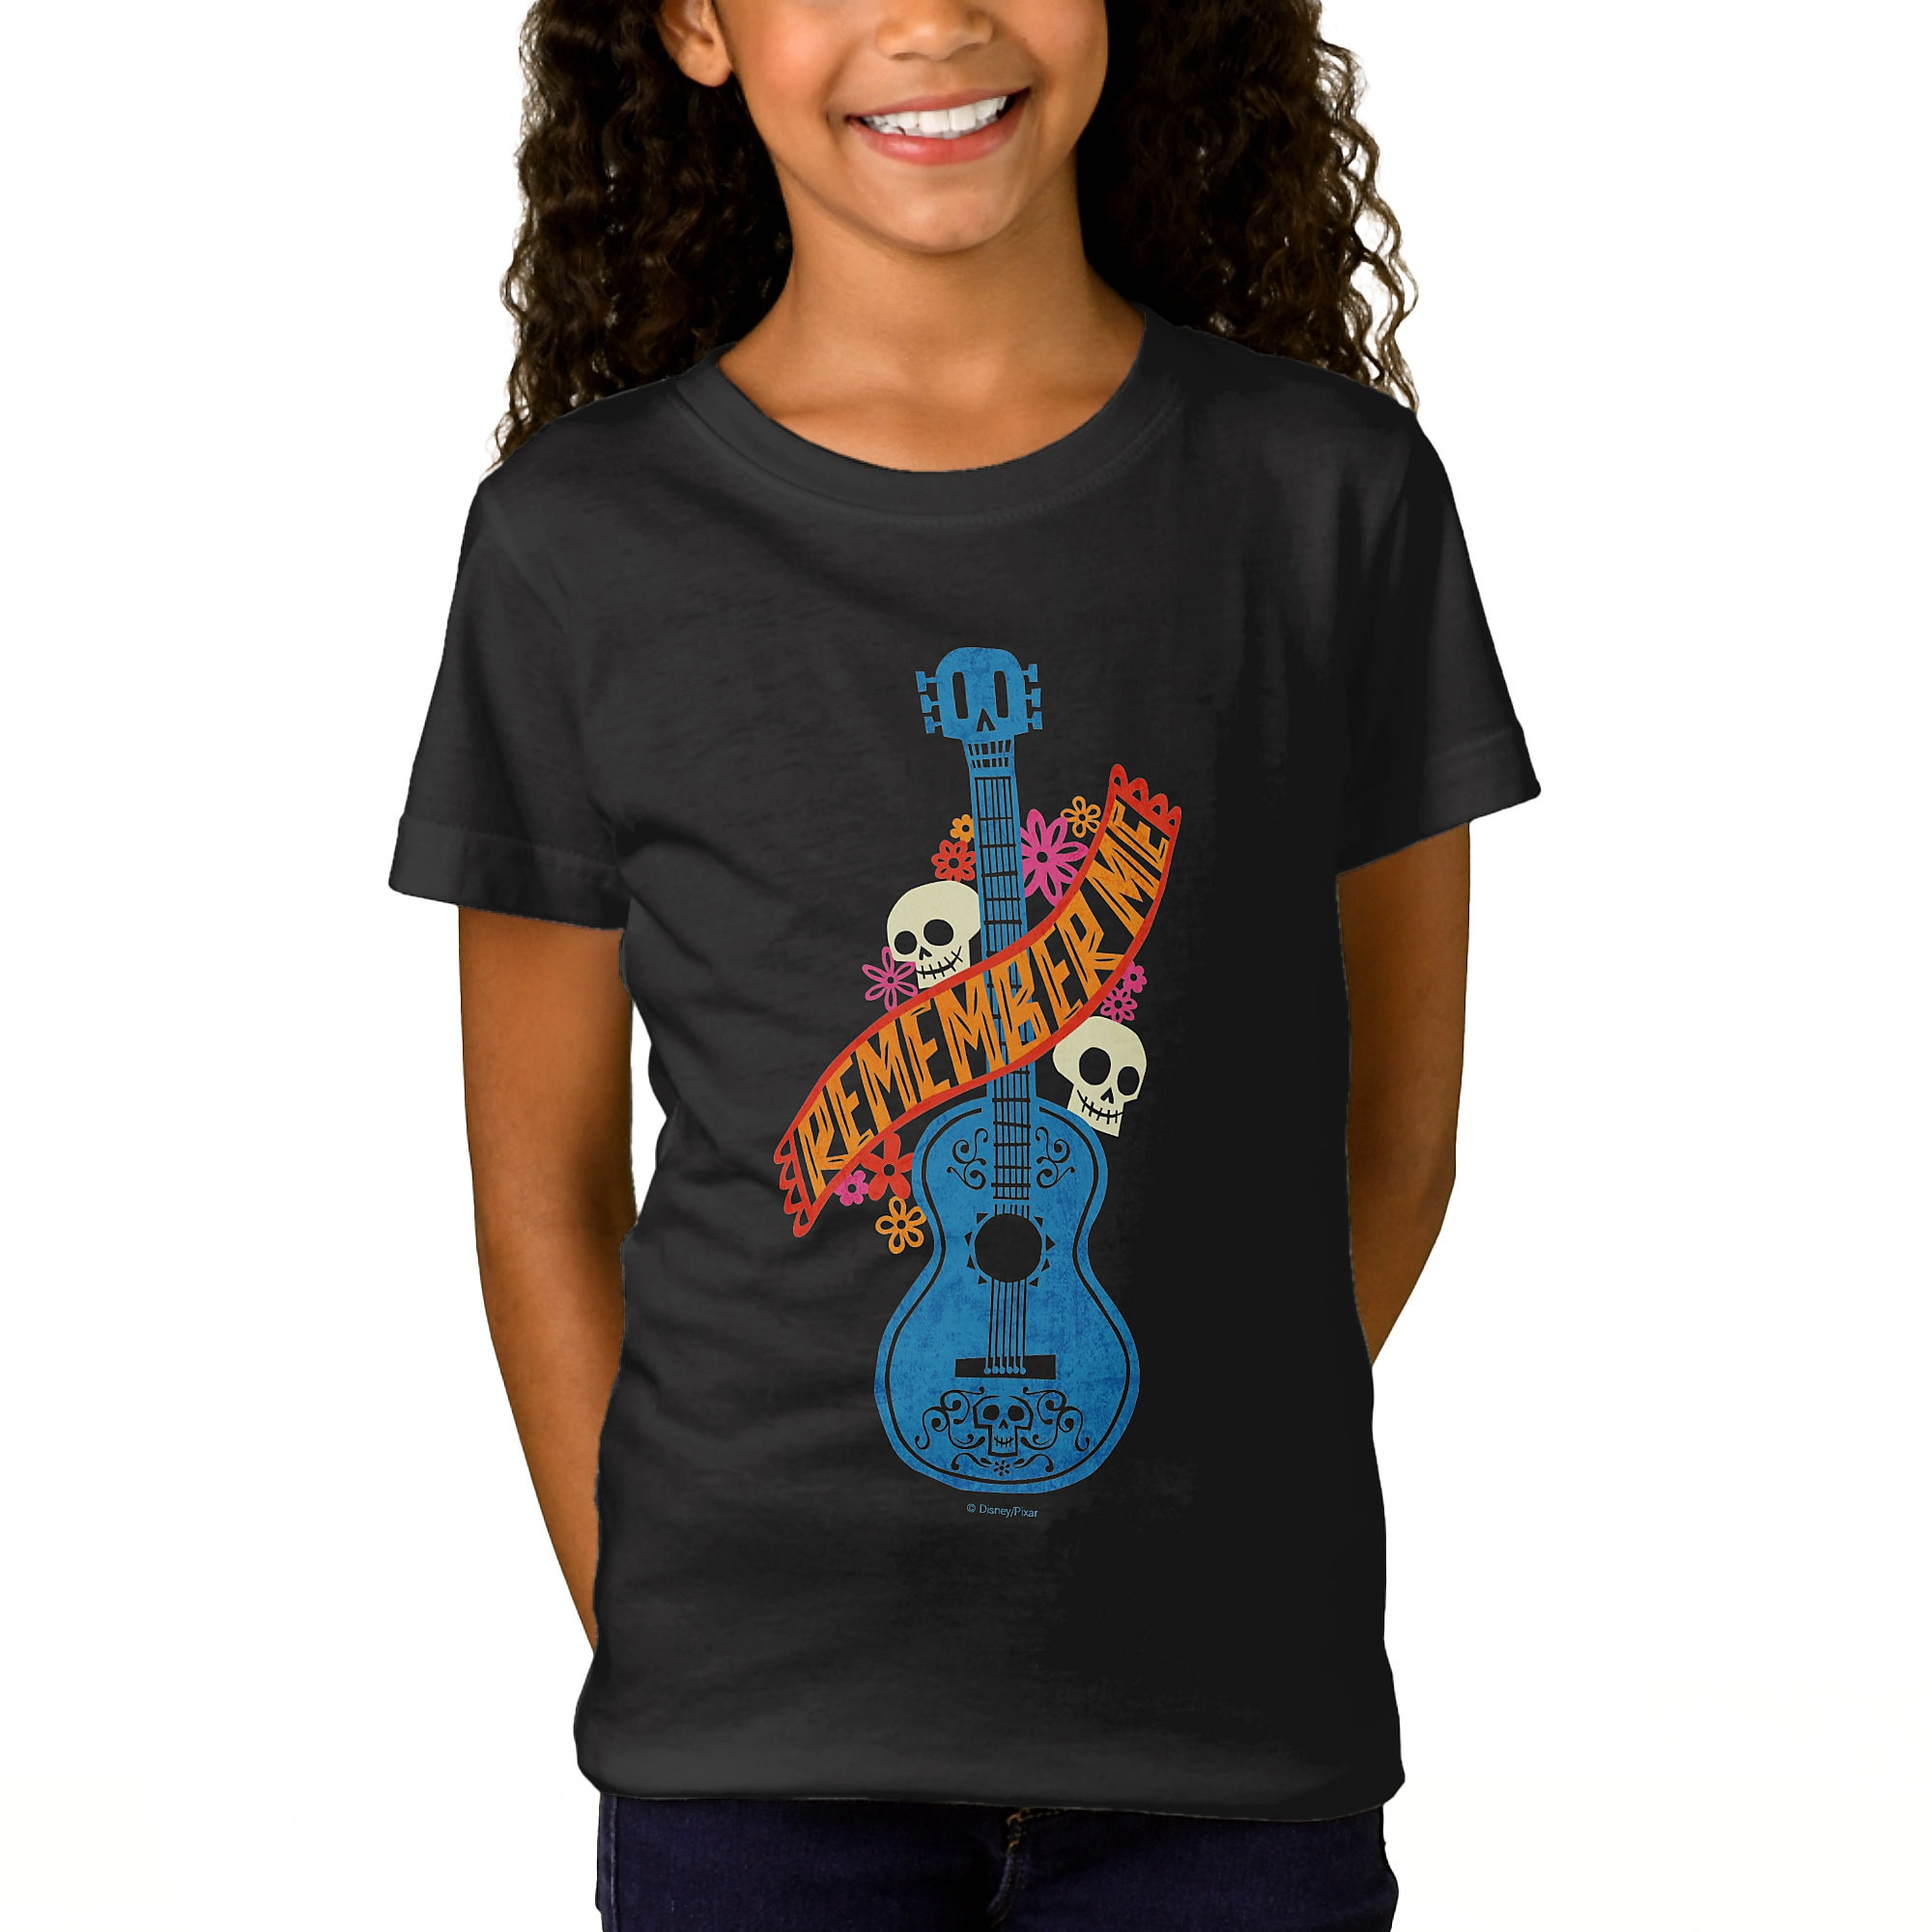 Coco Remember Me Guitar Graphic T-Shirt for Girls - Customizable